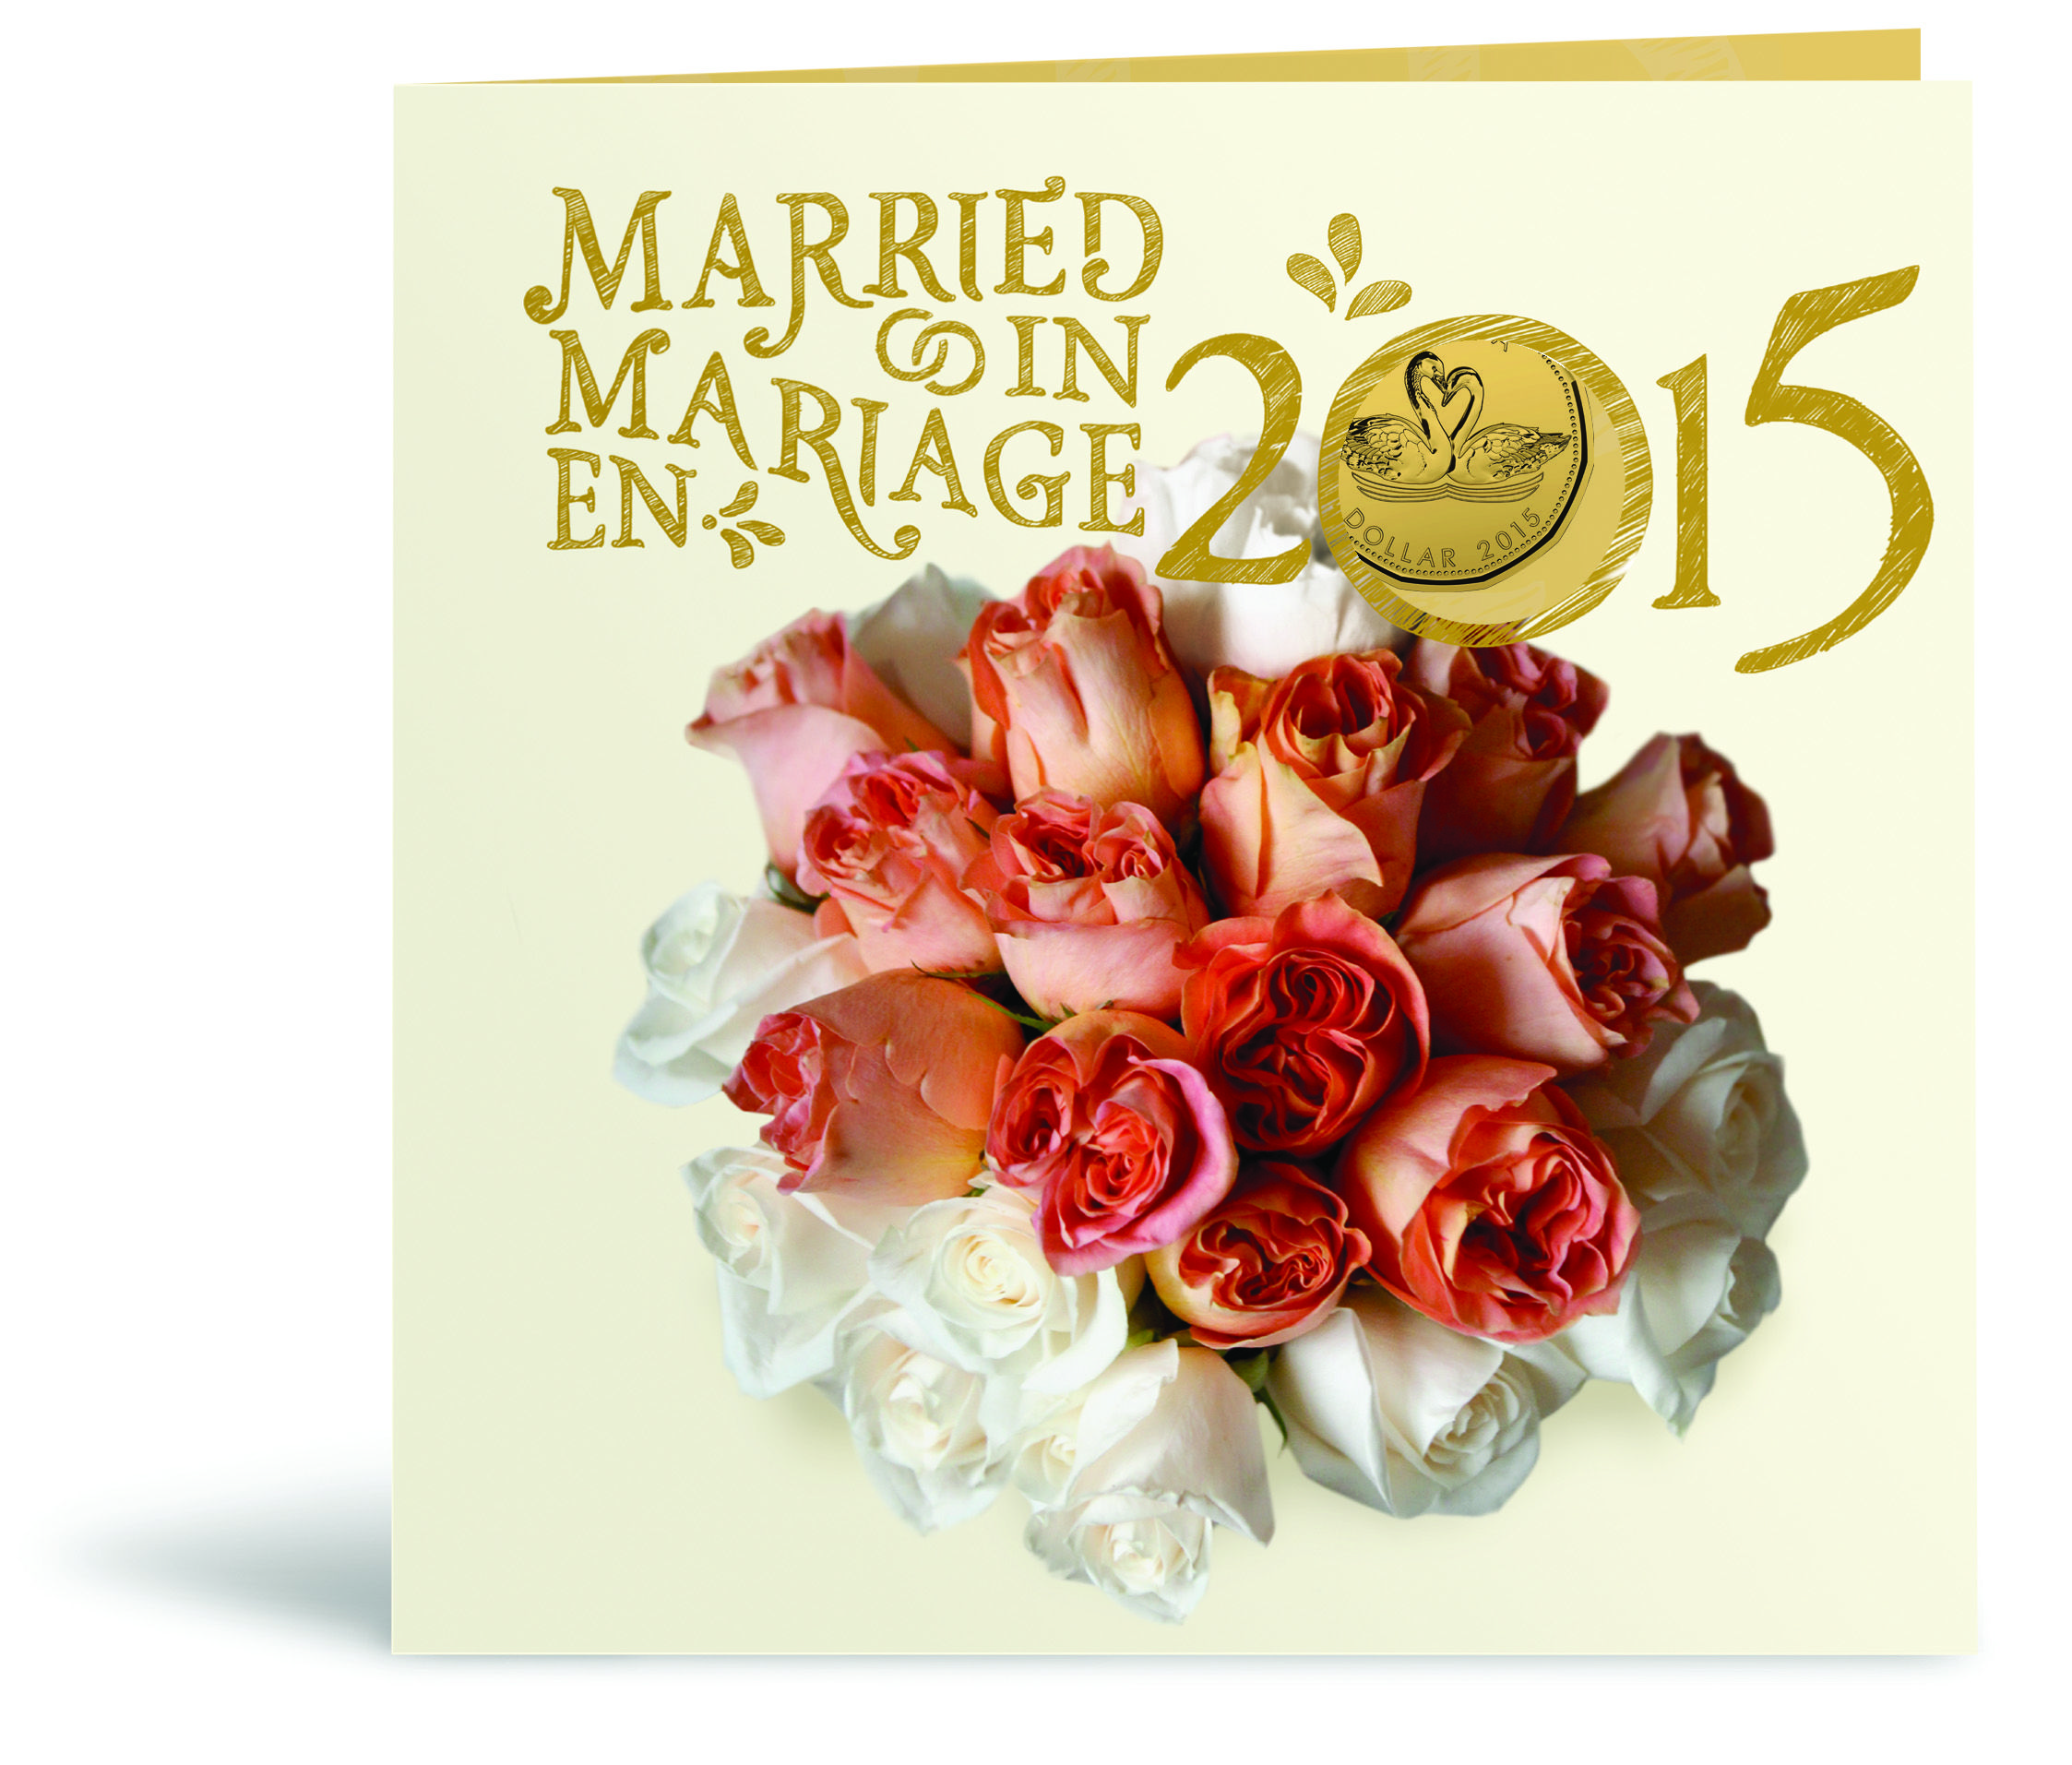 Wedding Gift Set (2015) Wedding gift set, Wedding gifts